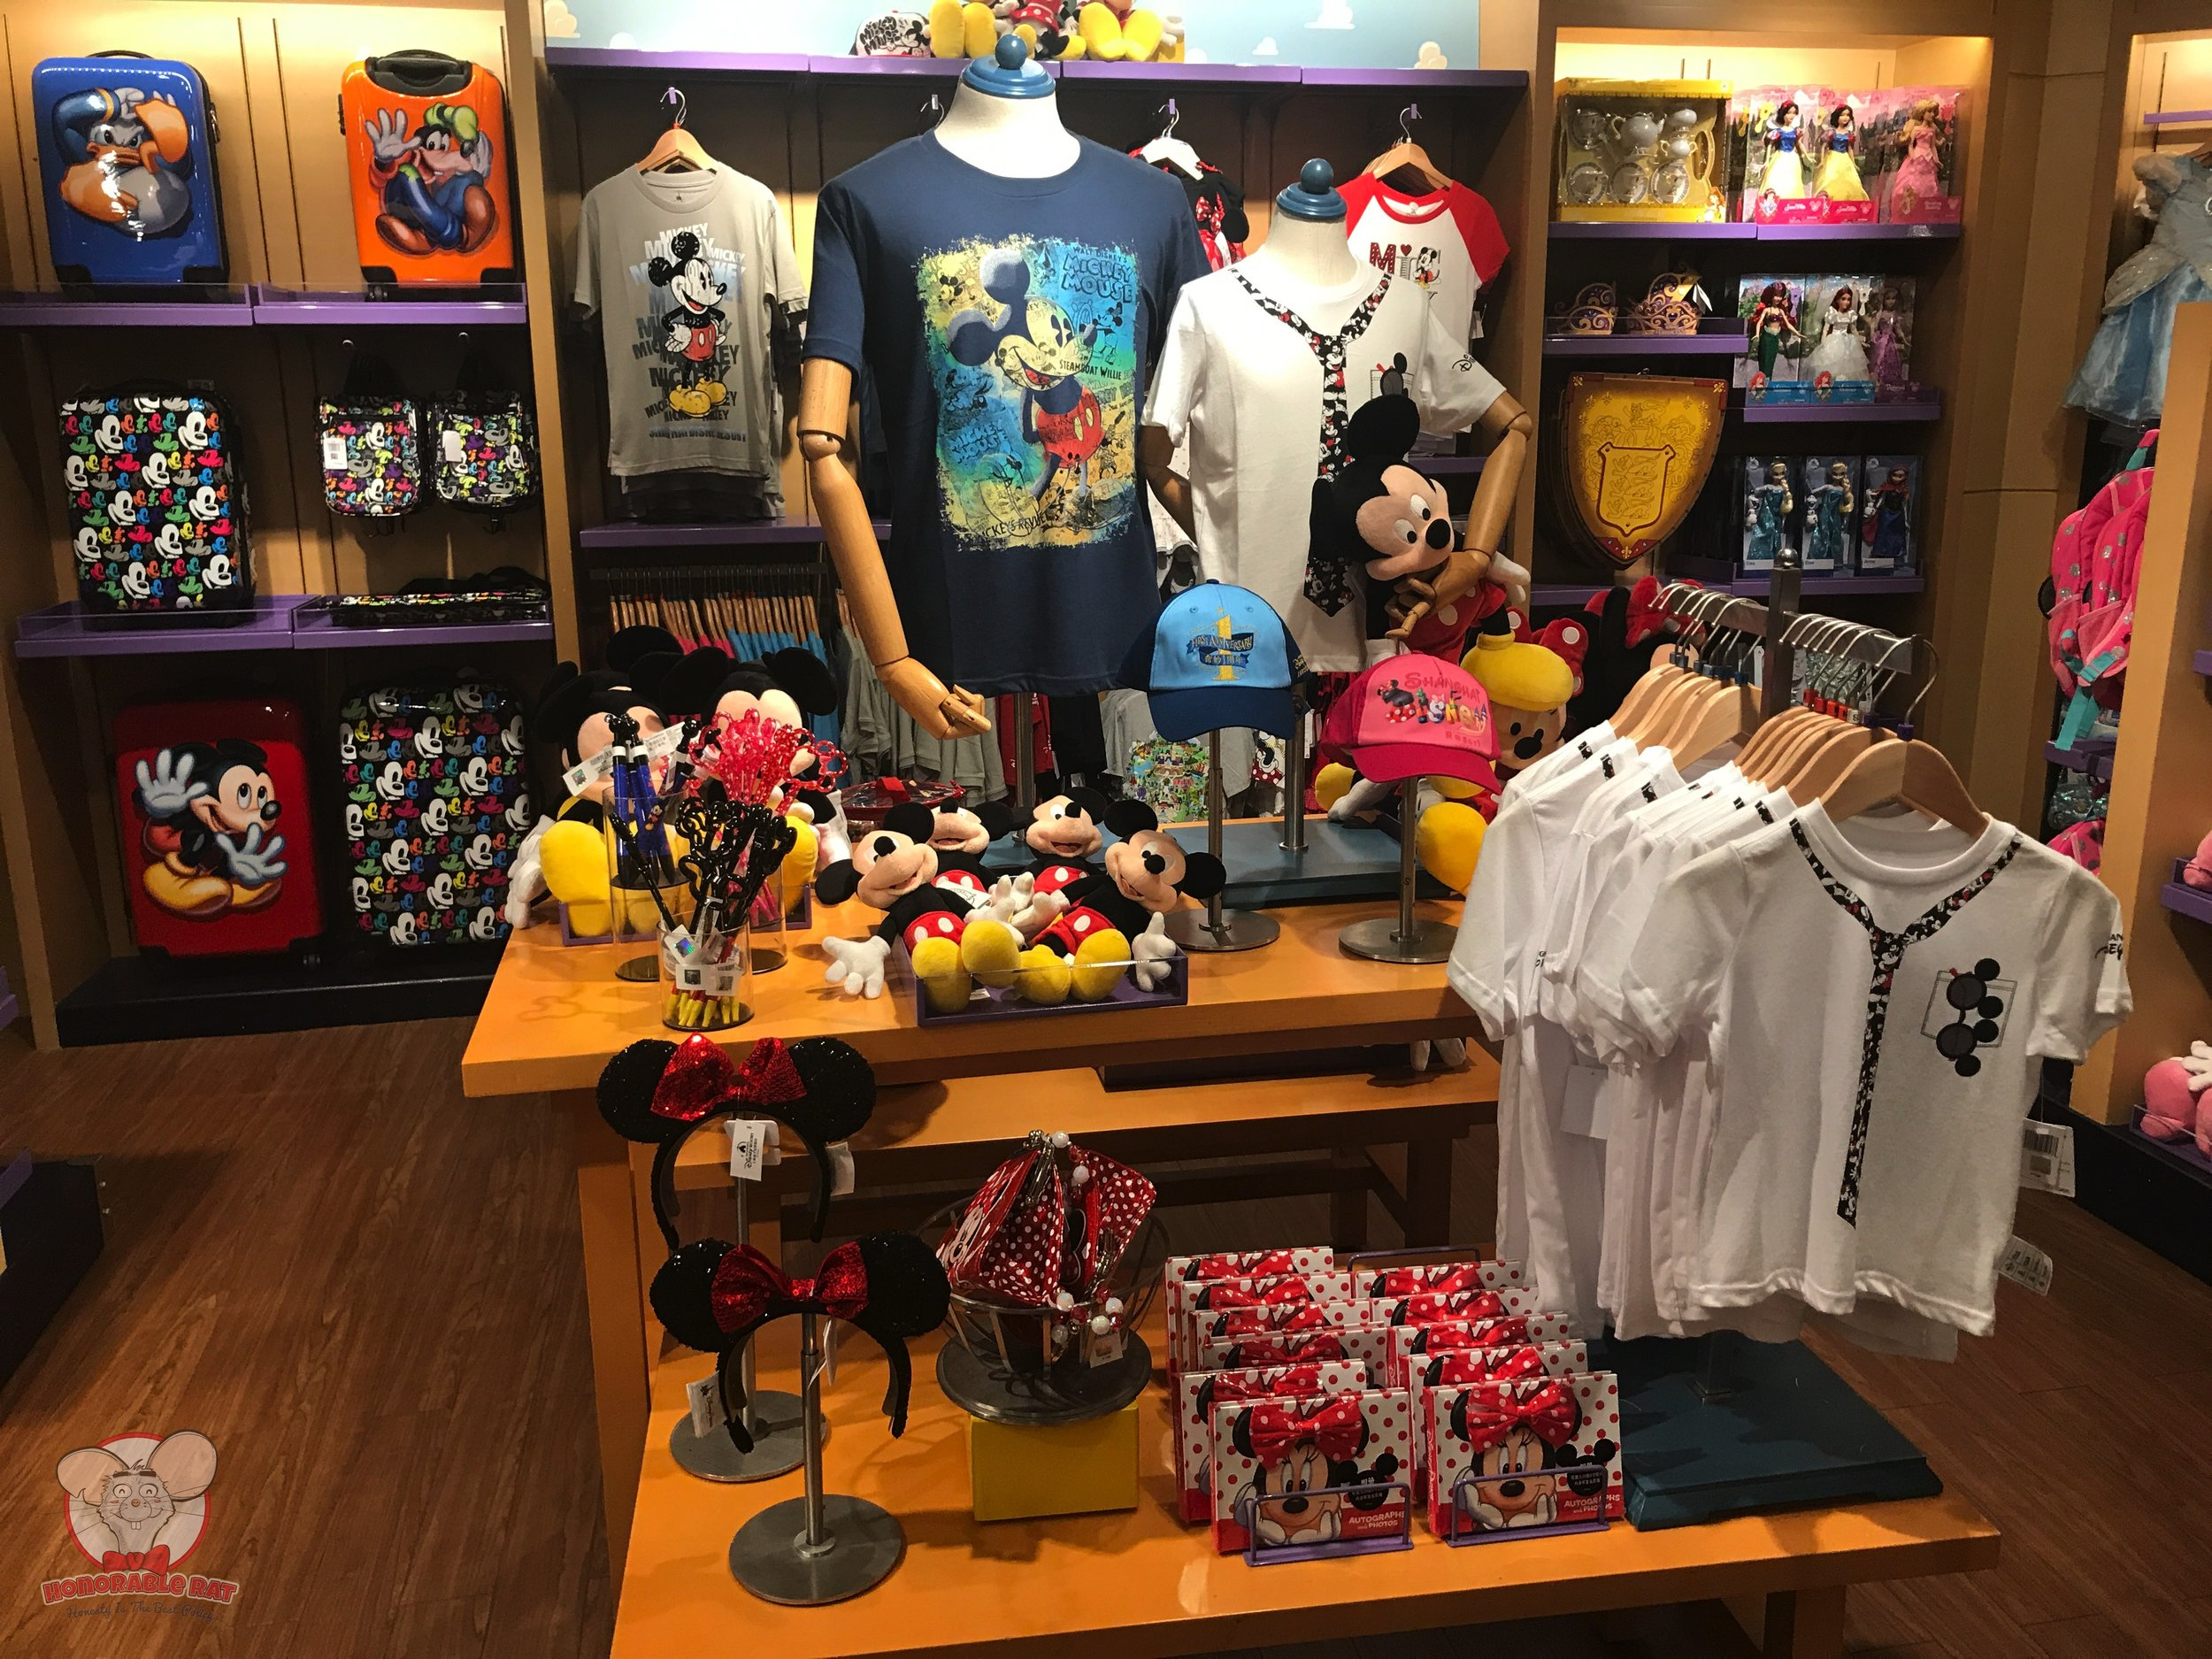 Loads of Mickey products going around